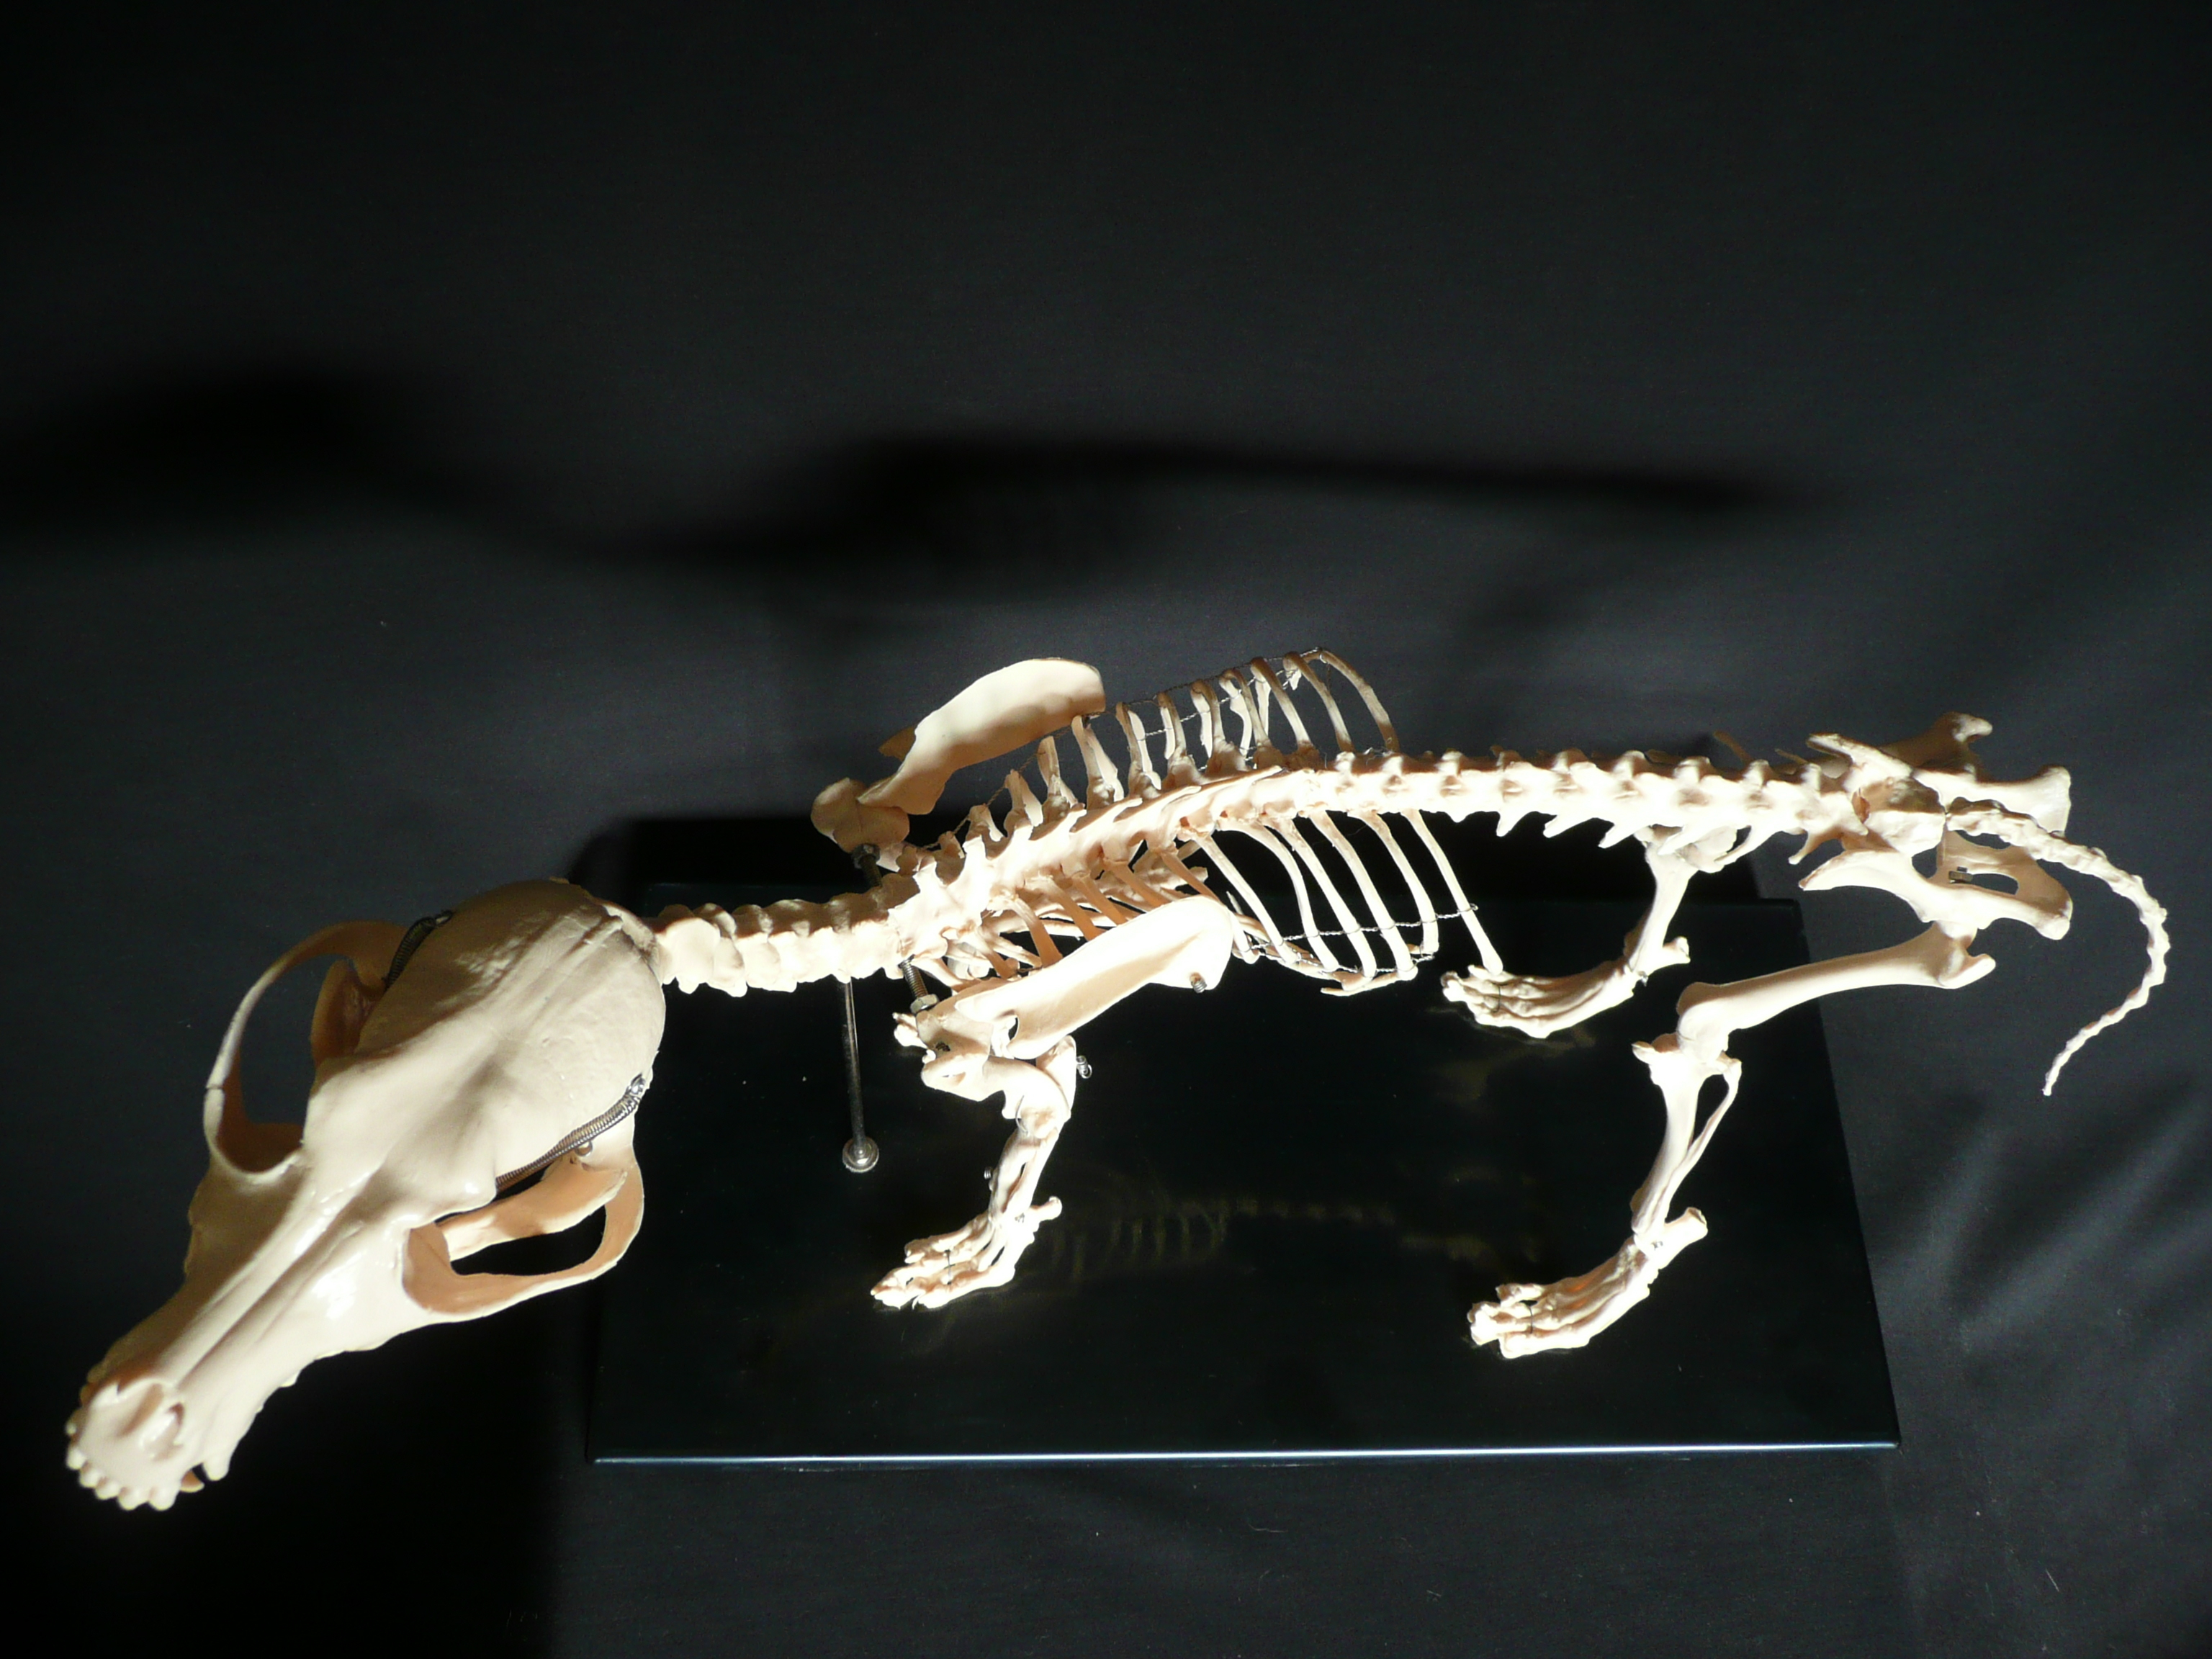 Dog anatomy model